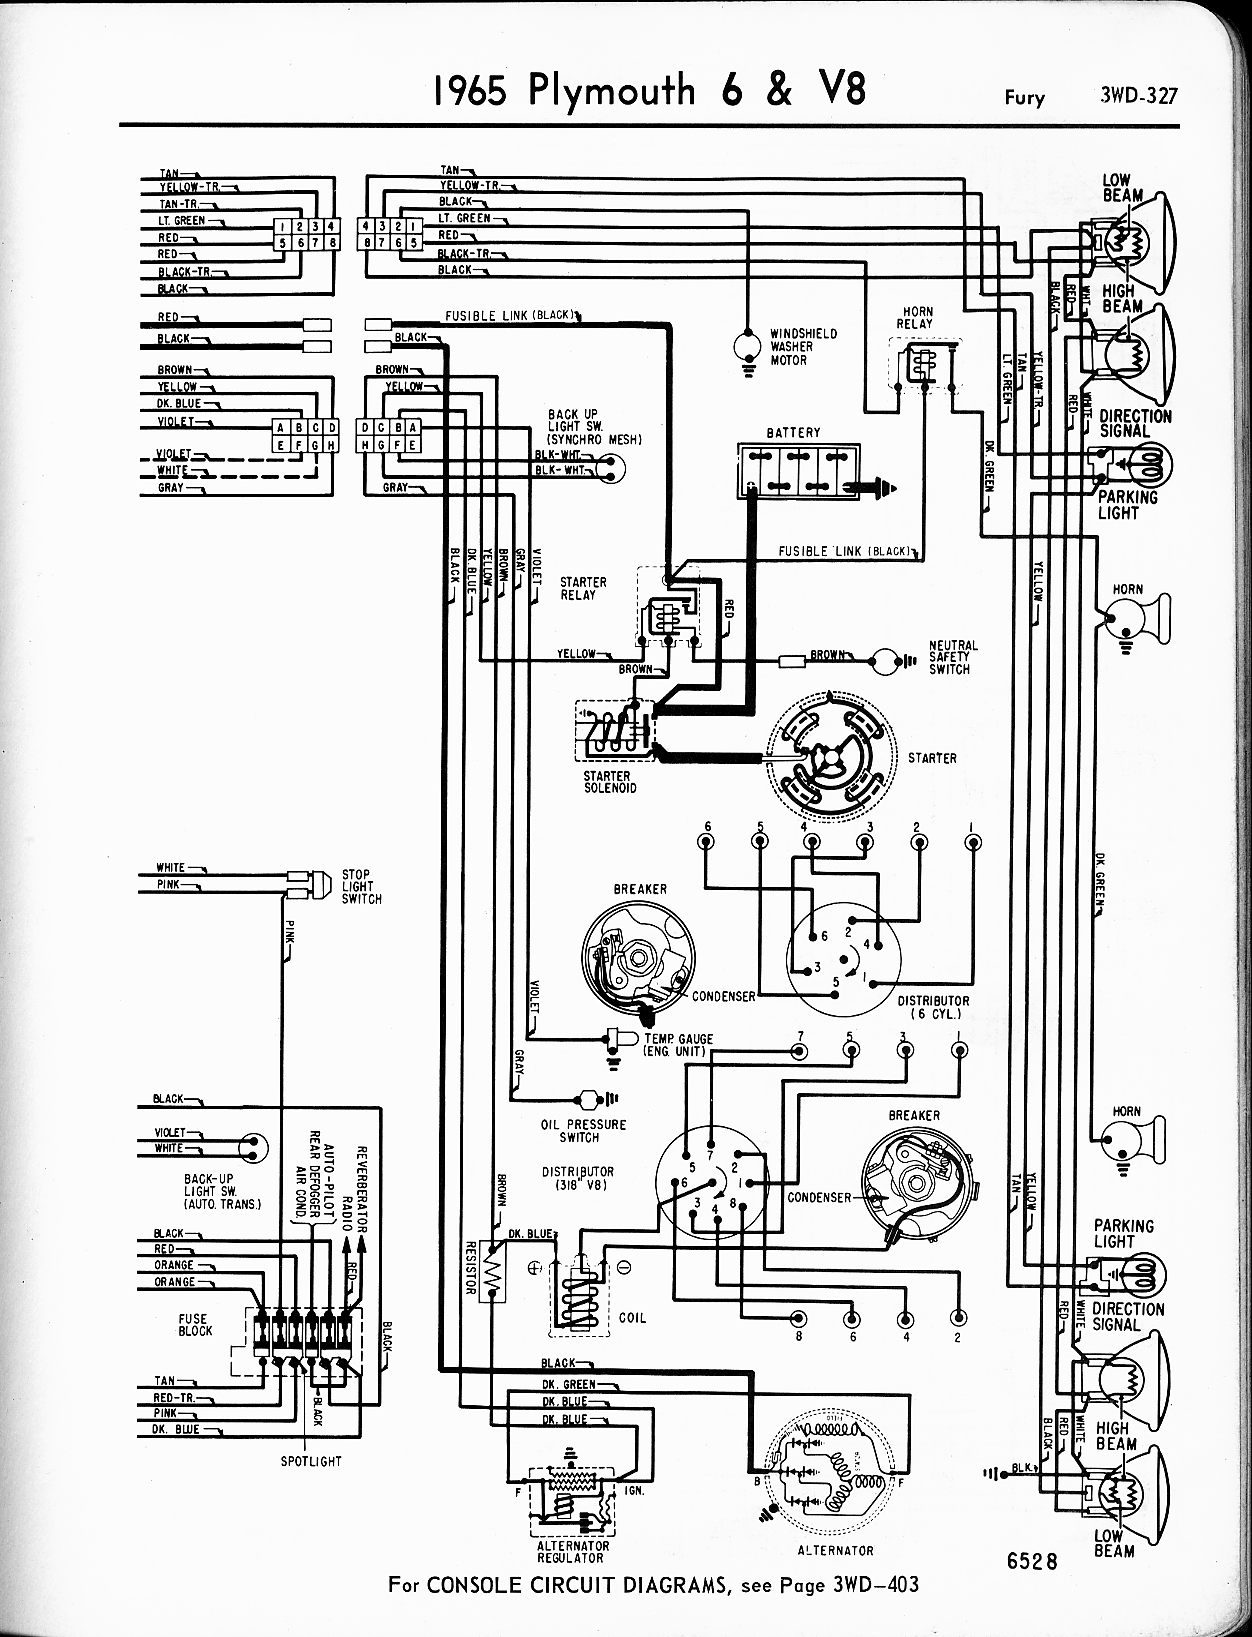 1967 plymouth fury wiring diagram wiring diagrams schematics 1965 barracuda wiring diagram wiring diagrams schematics 1956 1965 plymouth wiring the old car